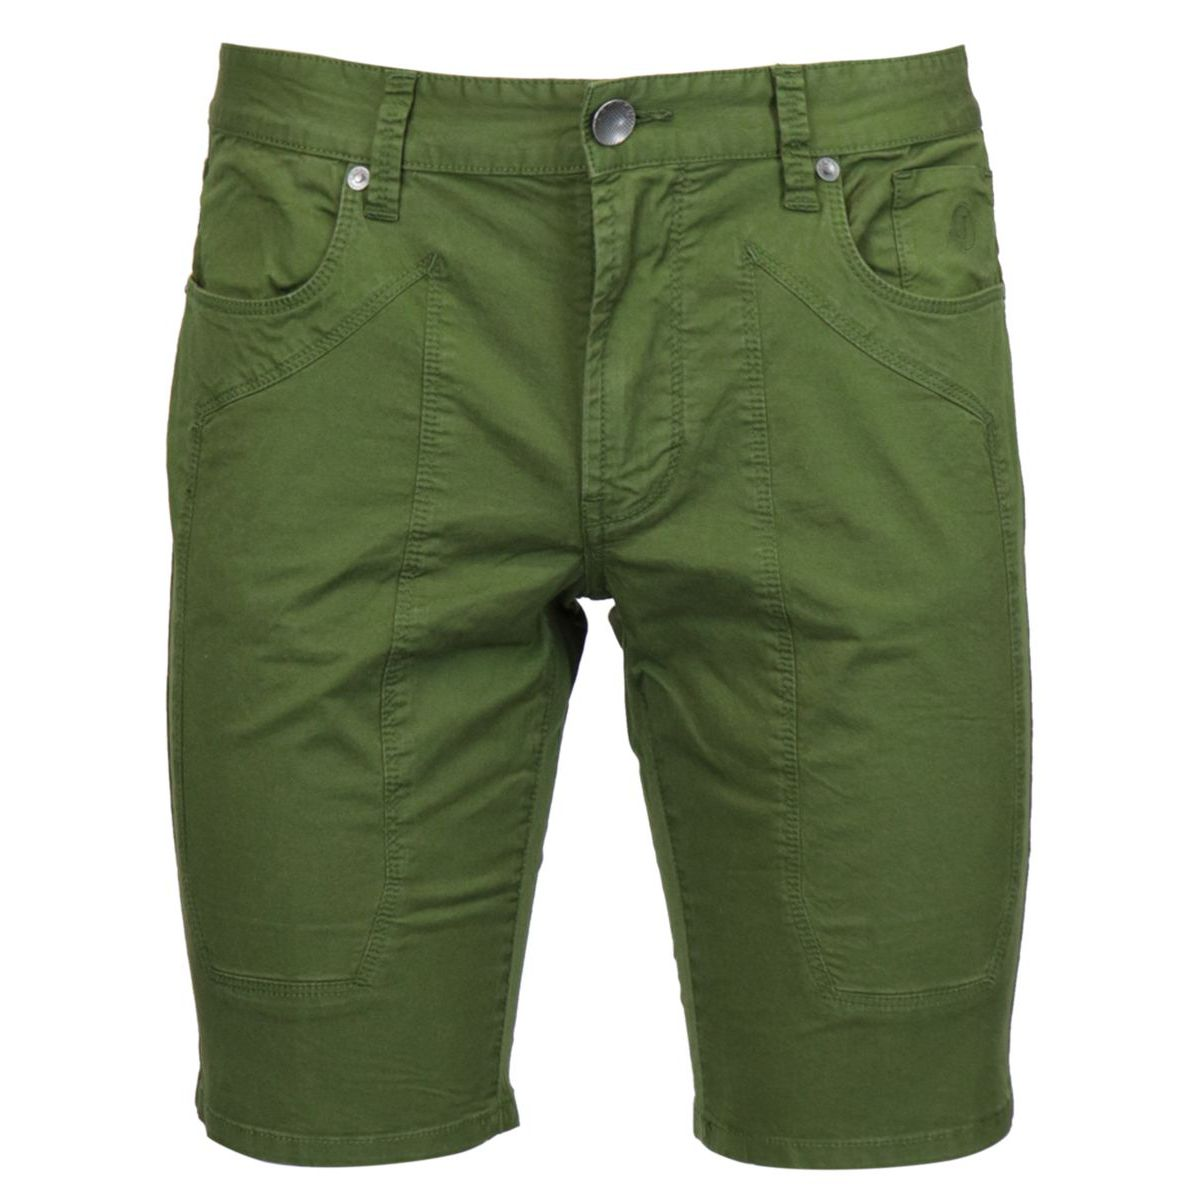 Cotton shorts with 5-pocket patch Military Jeckerson